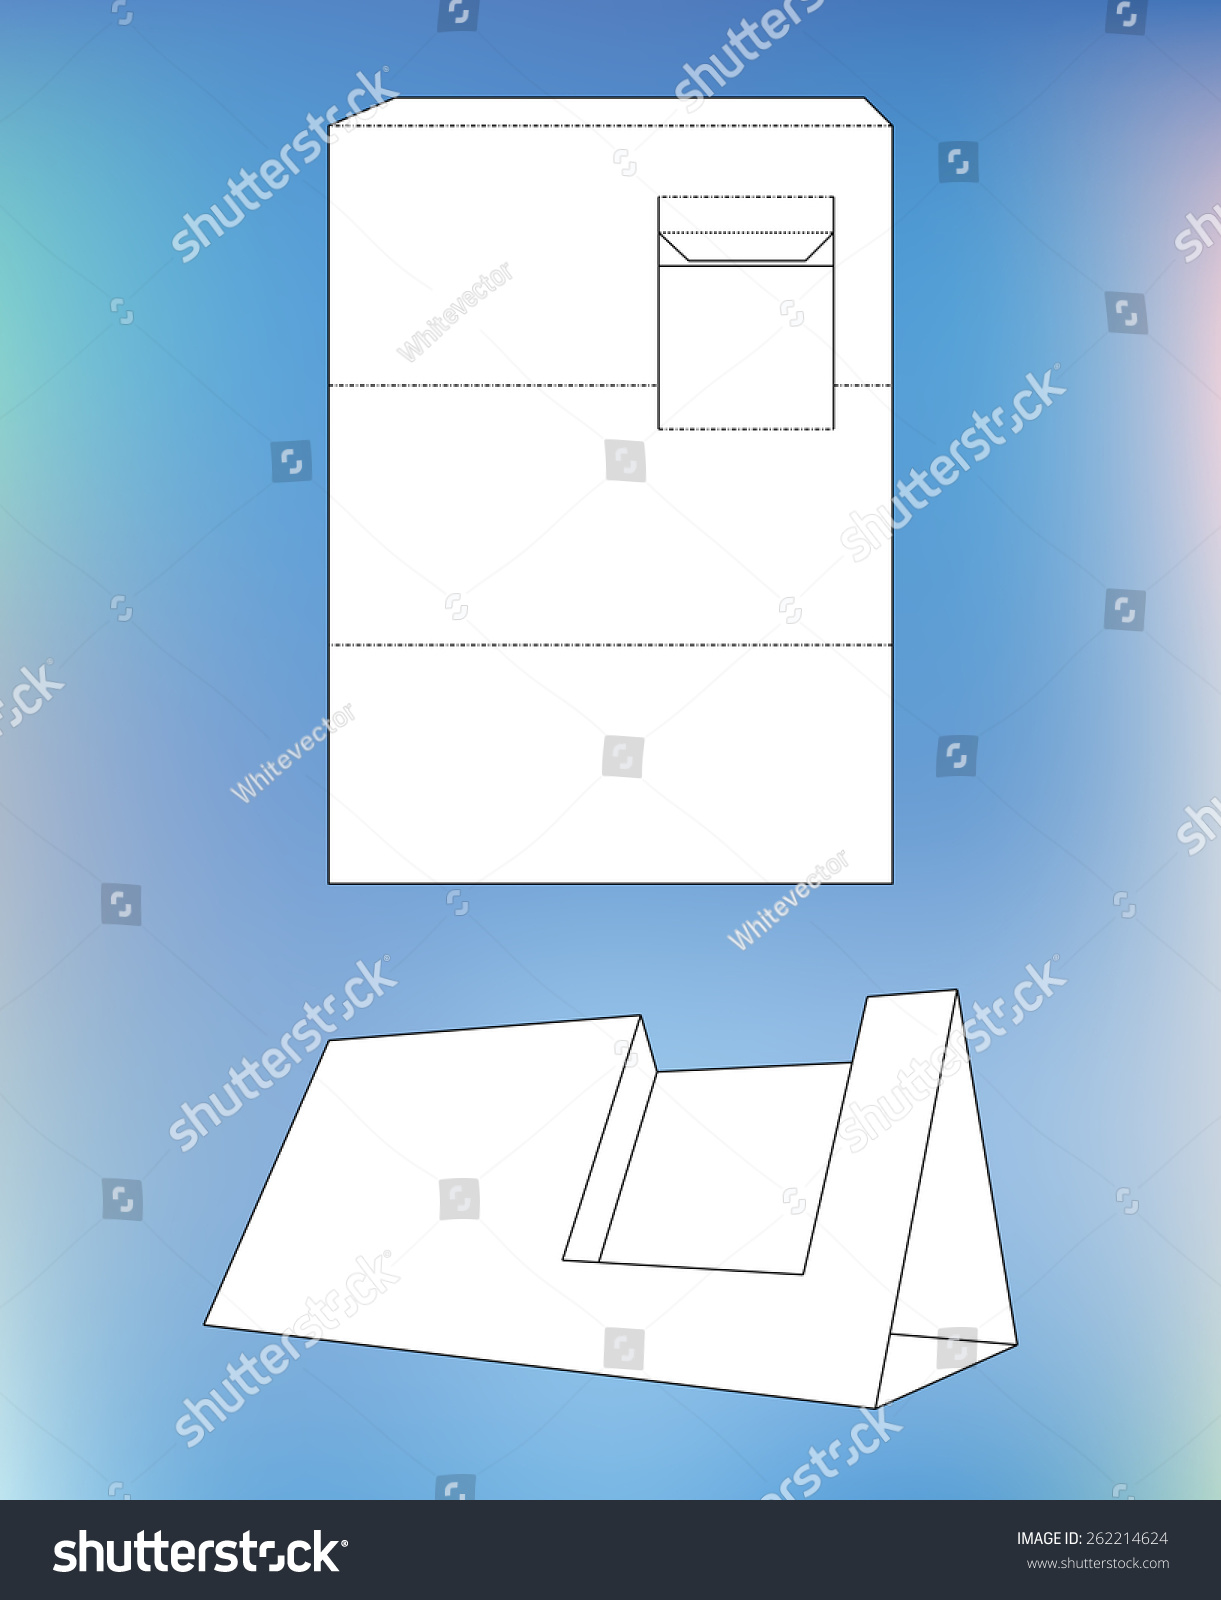 Business card display box product display vector de stock262214624 product display box with blueprint layout business card holder and malvernweather Images